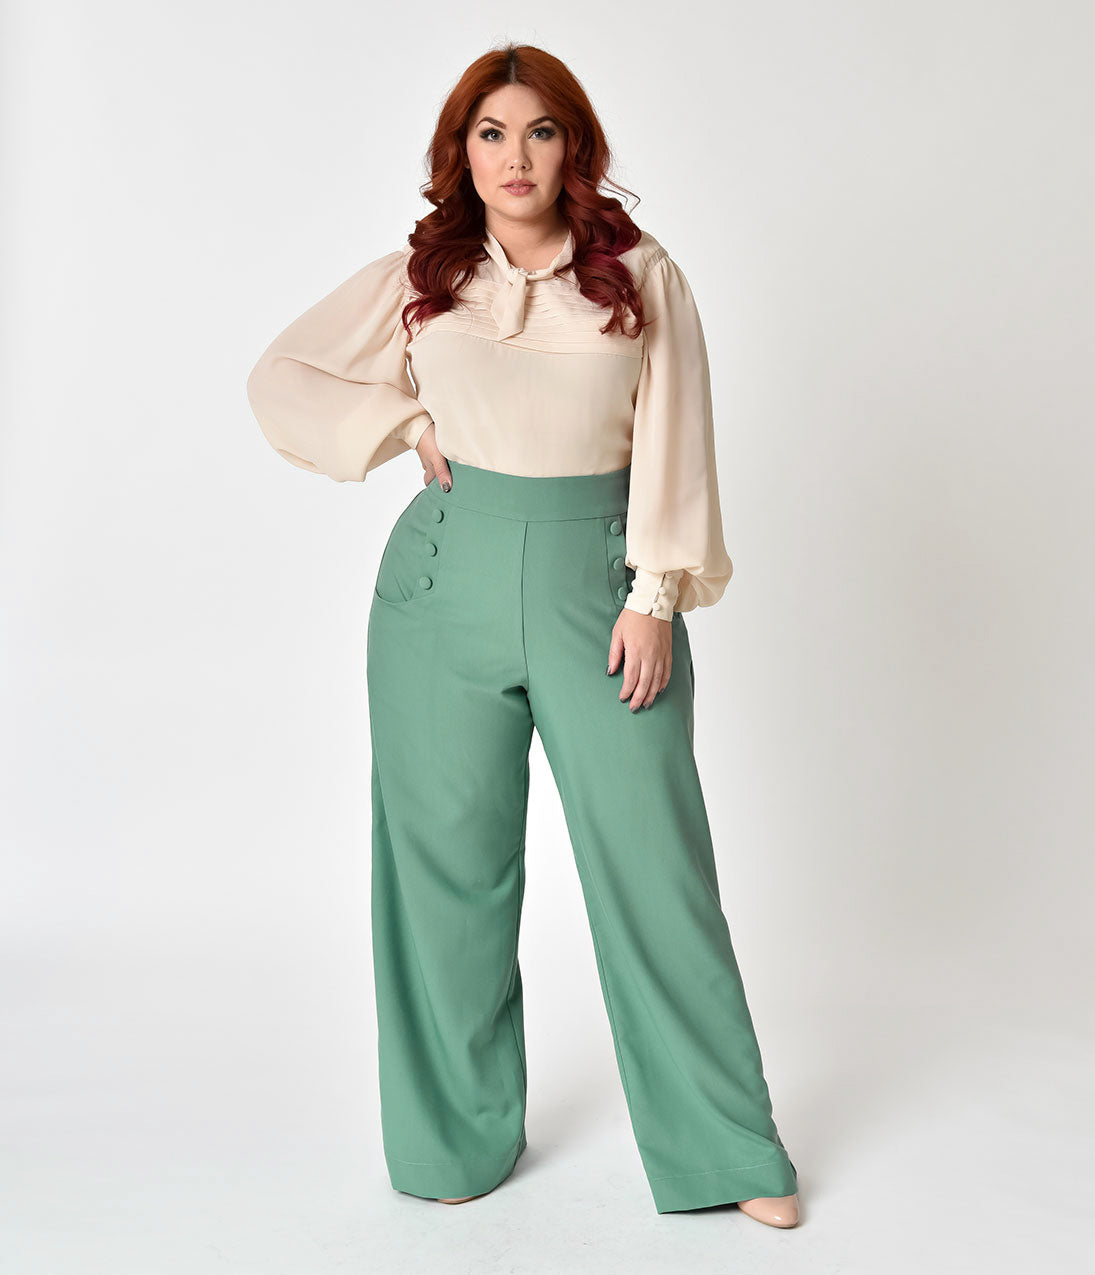 1950s Pants & Jeans- High Waist, Wide Leg, Capri, Pedal Pushers Unique Vintage Plus Size 1940S Style Sage Green High Waist Sailor Ginger Pants $62.00 AT vintagedancer.com